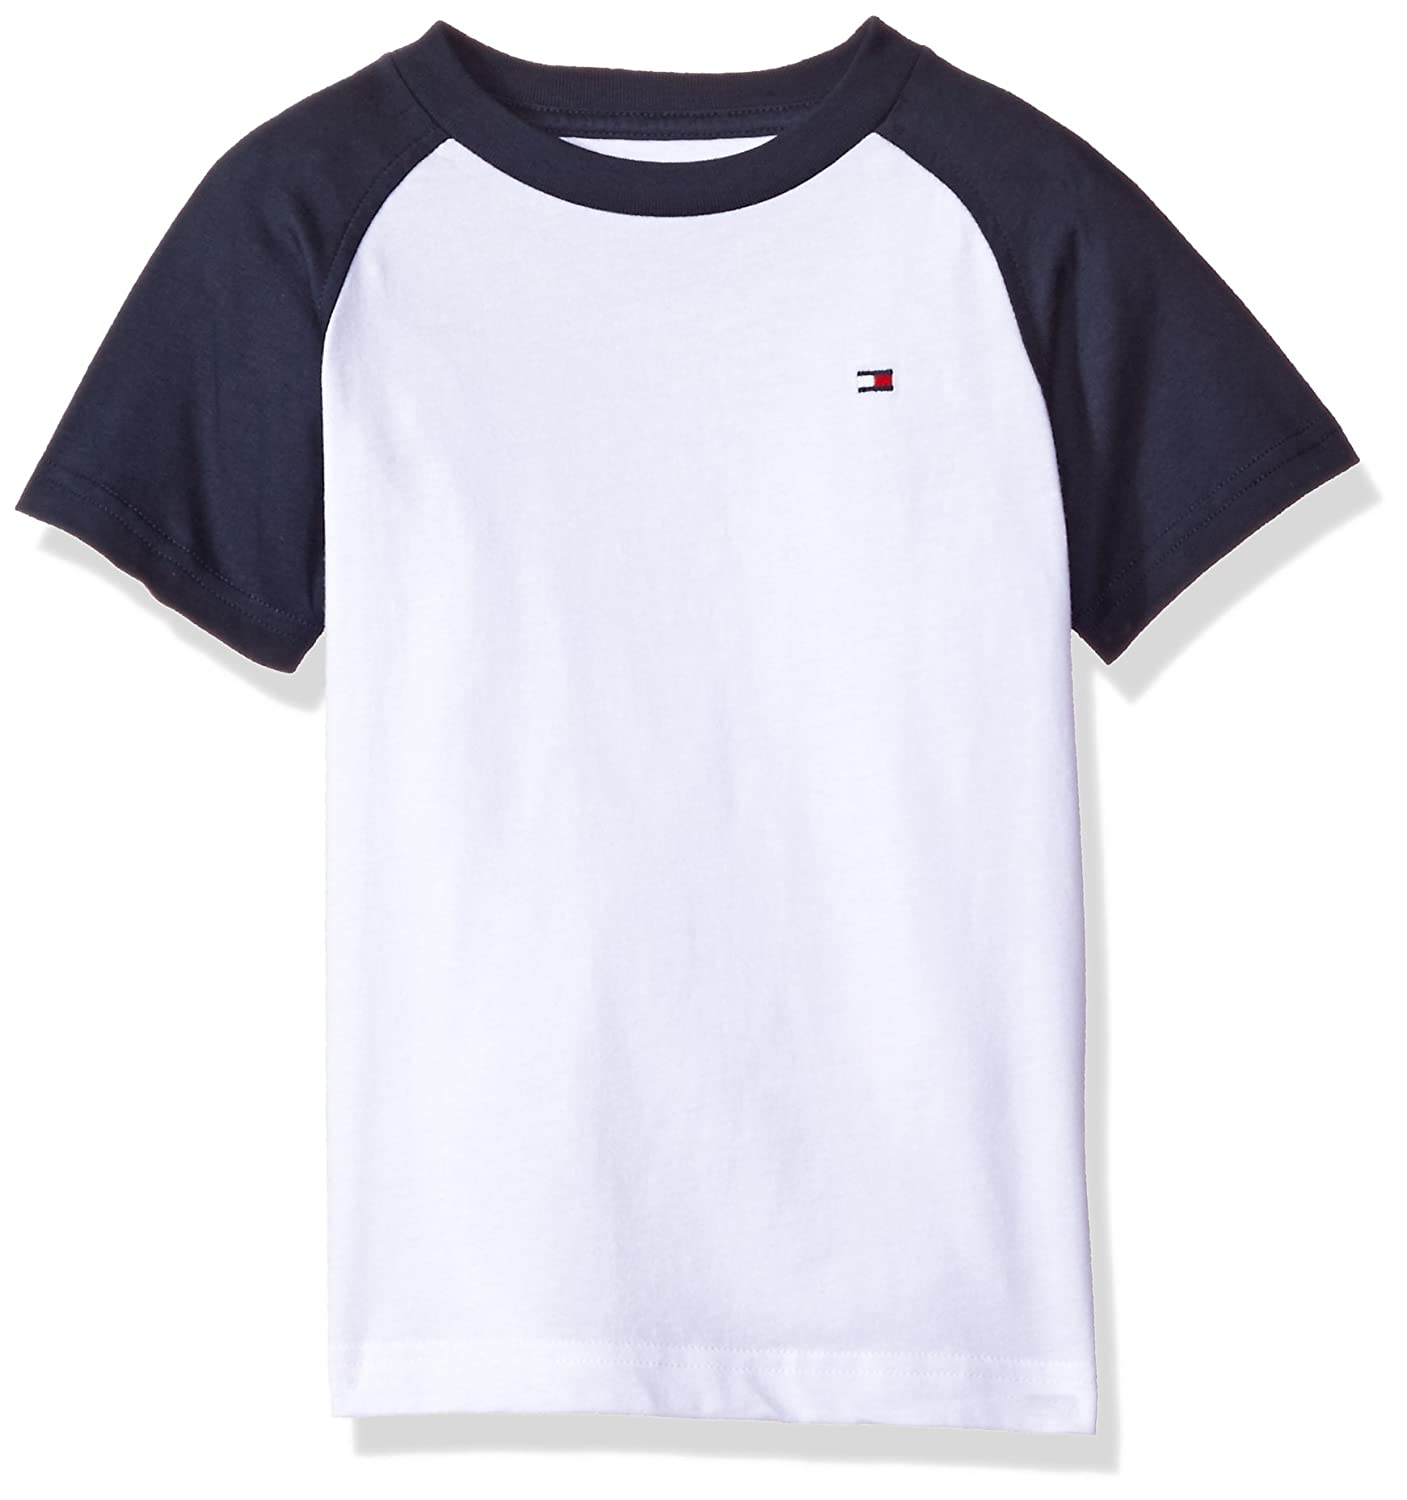 4b2957a9 Amazon.com: Tommy Hilfiger Boys' Short Sleeve Raglan T-Shirt: Clothing